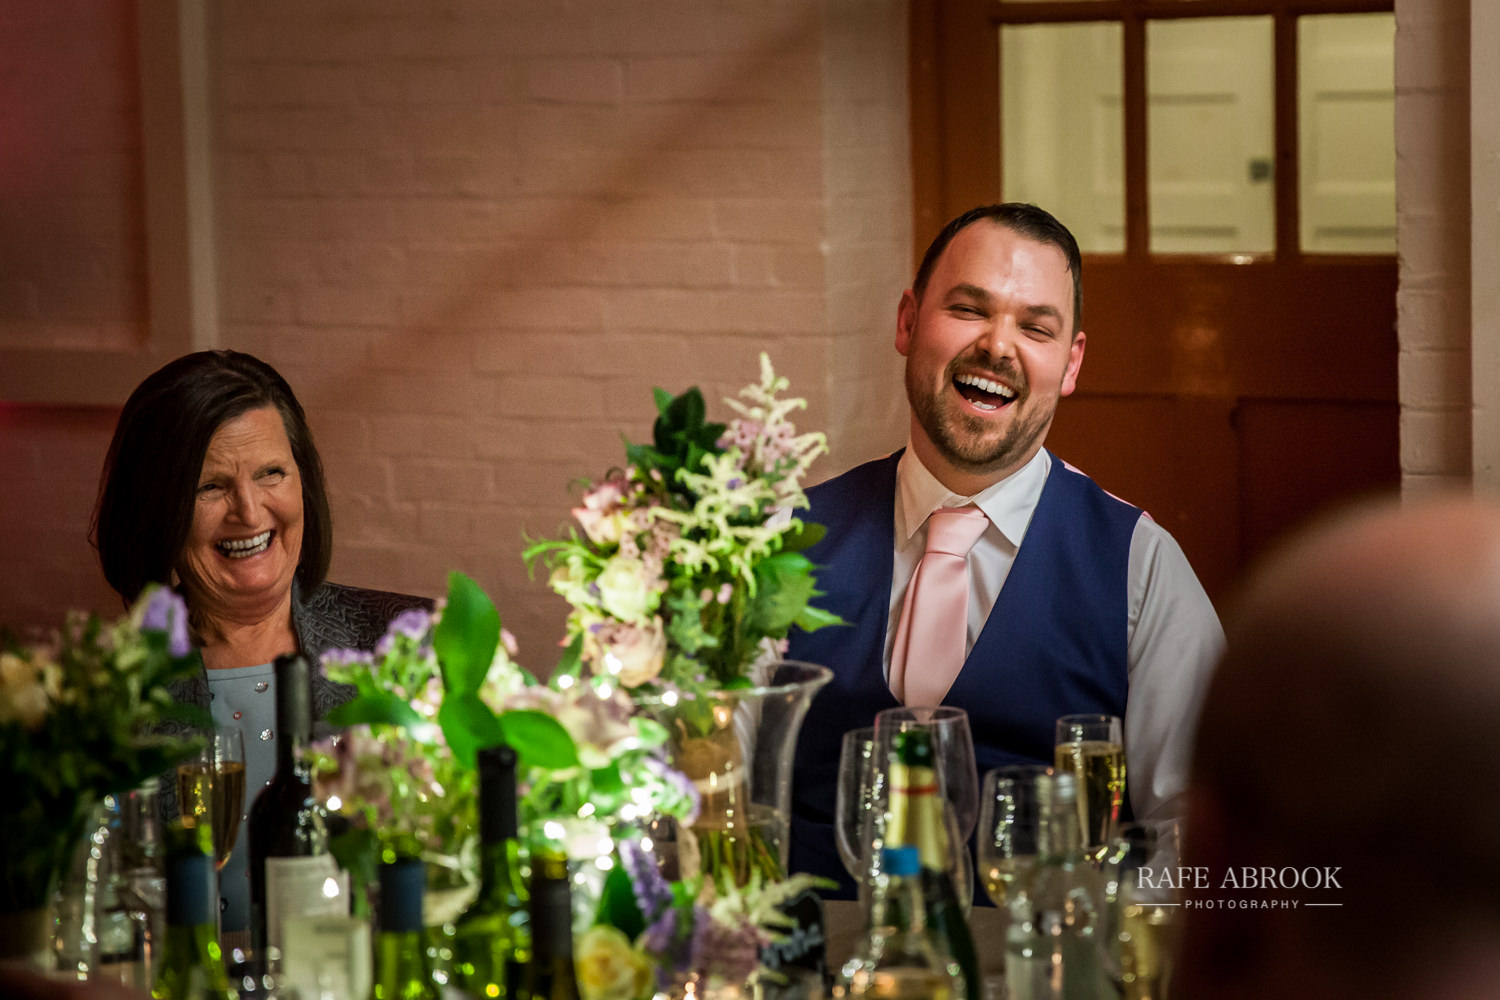 thursley village hall guildford surrey wedding hertfordshire wedding photographer-1353.jpg